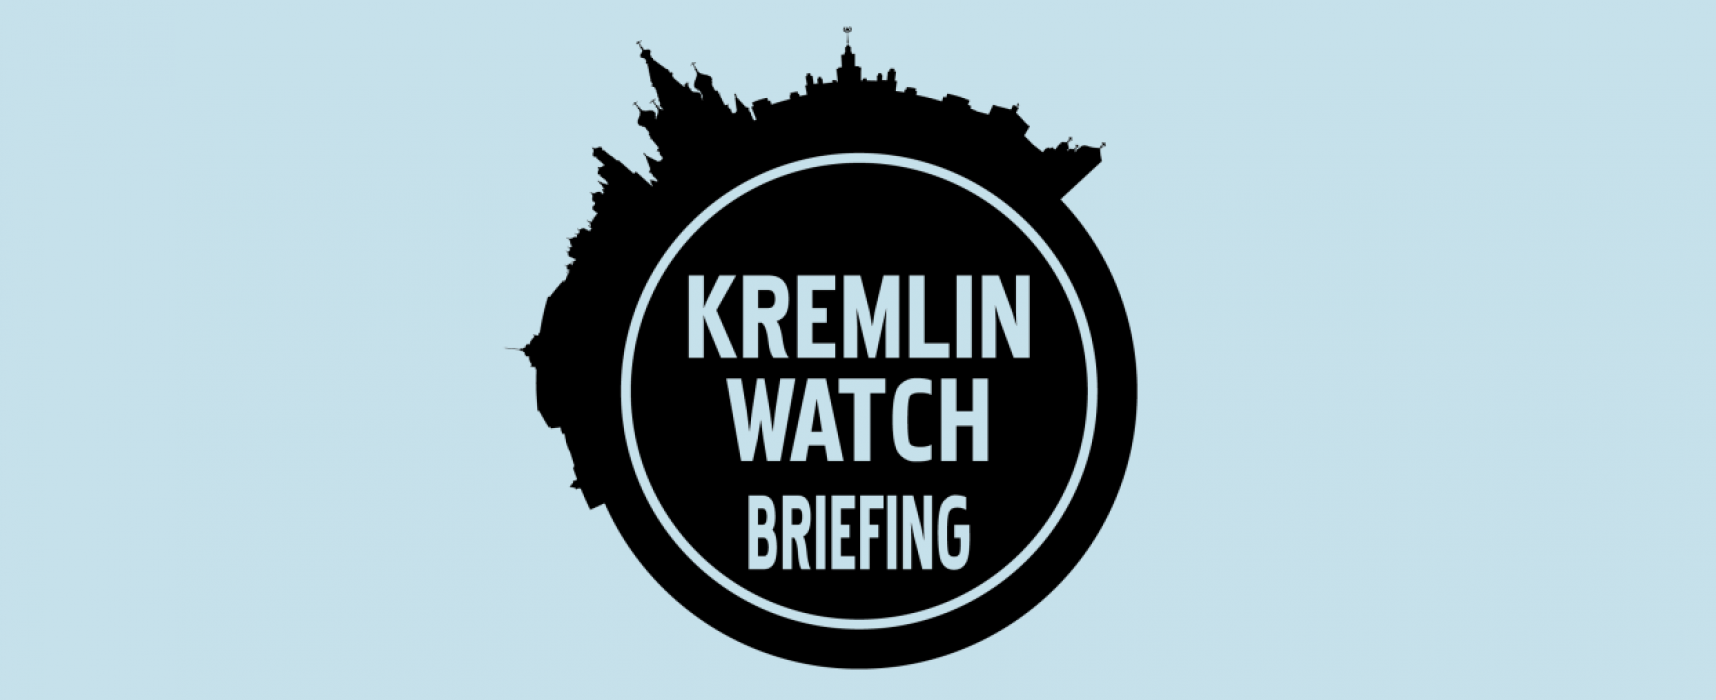 Kremlin Watch Briefing: Russia created fake independent news sites in the Baltics